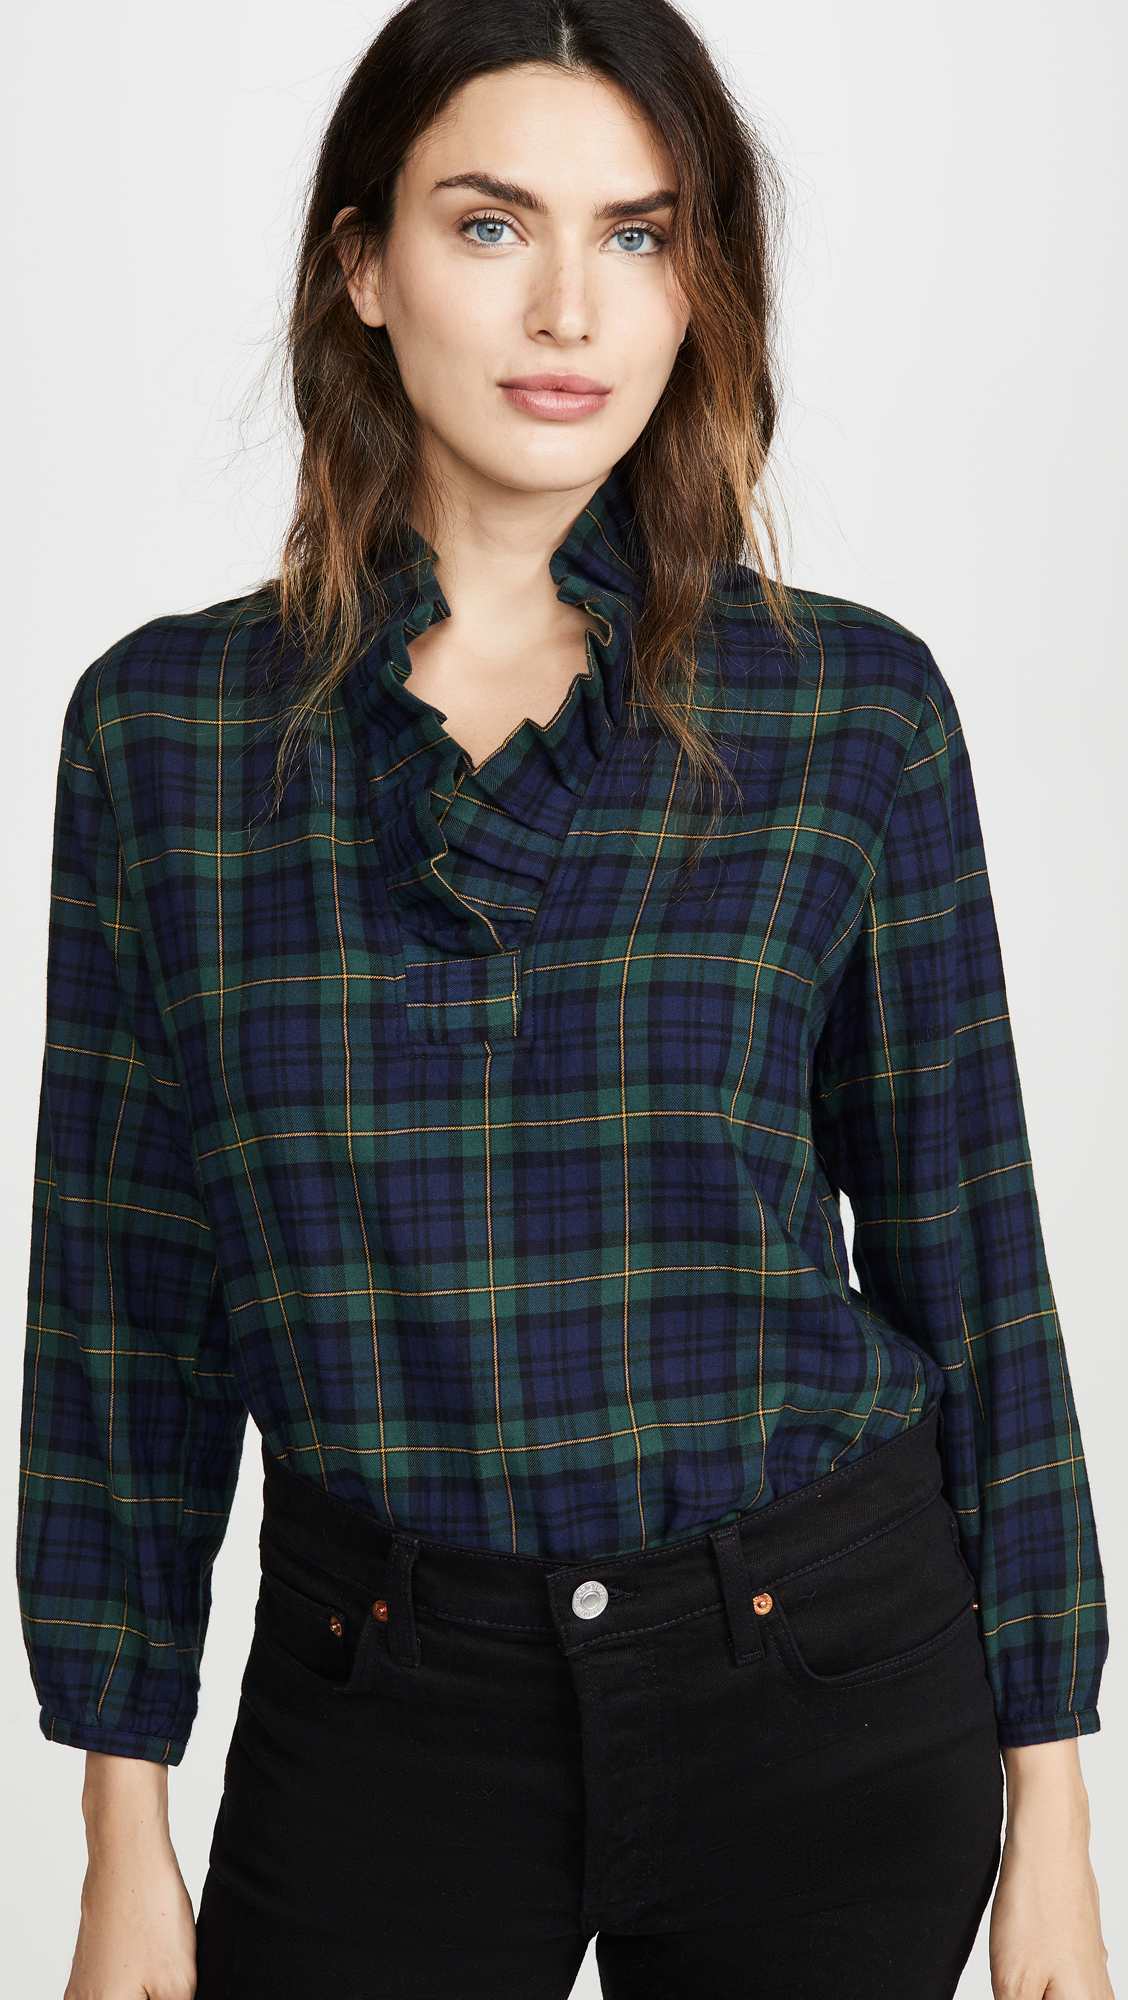 Green and Navy Blackwatch Plaid Blouse